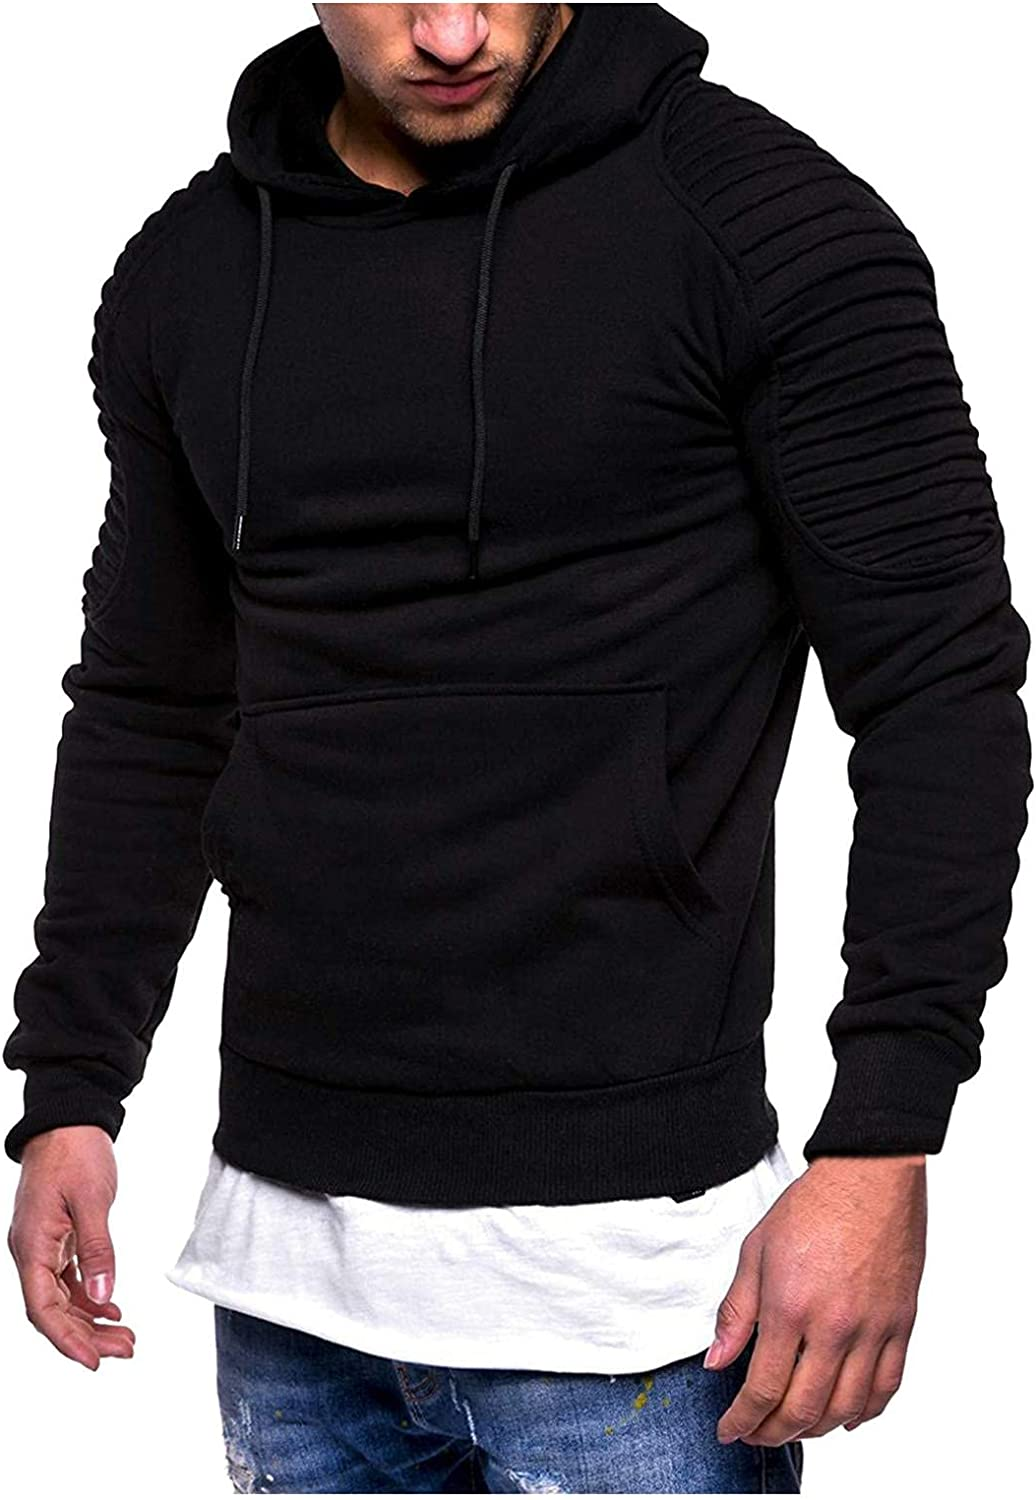 Burband Mens Fashion Athletic Hoodie Sweatshirts Casual Sport Pleated Long Sleeve Pullover with Pockets Sudaderas de Hombre